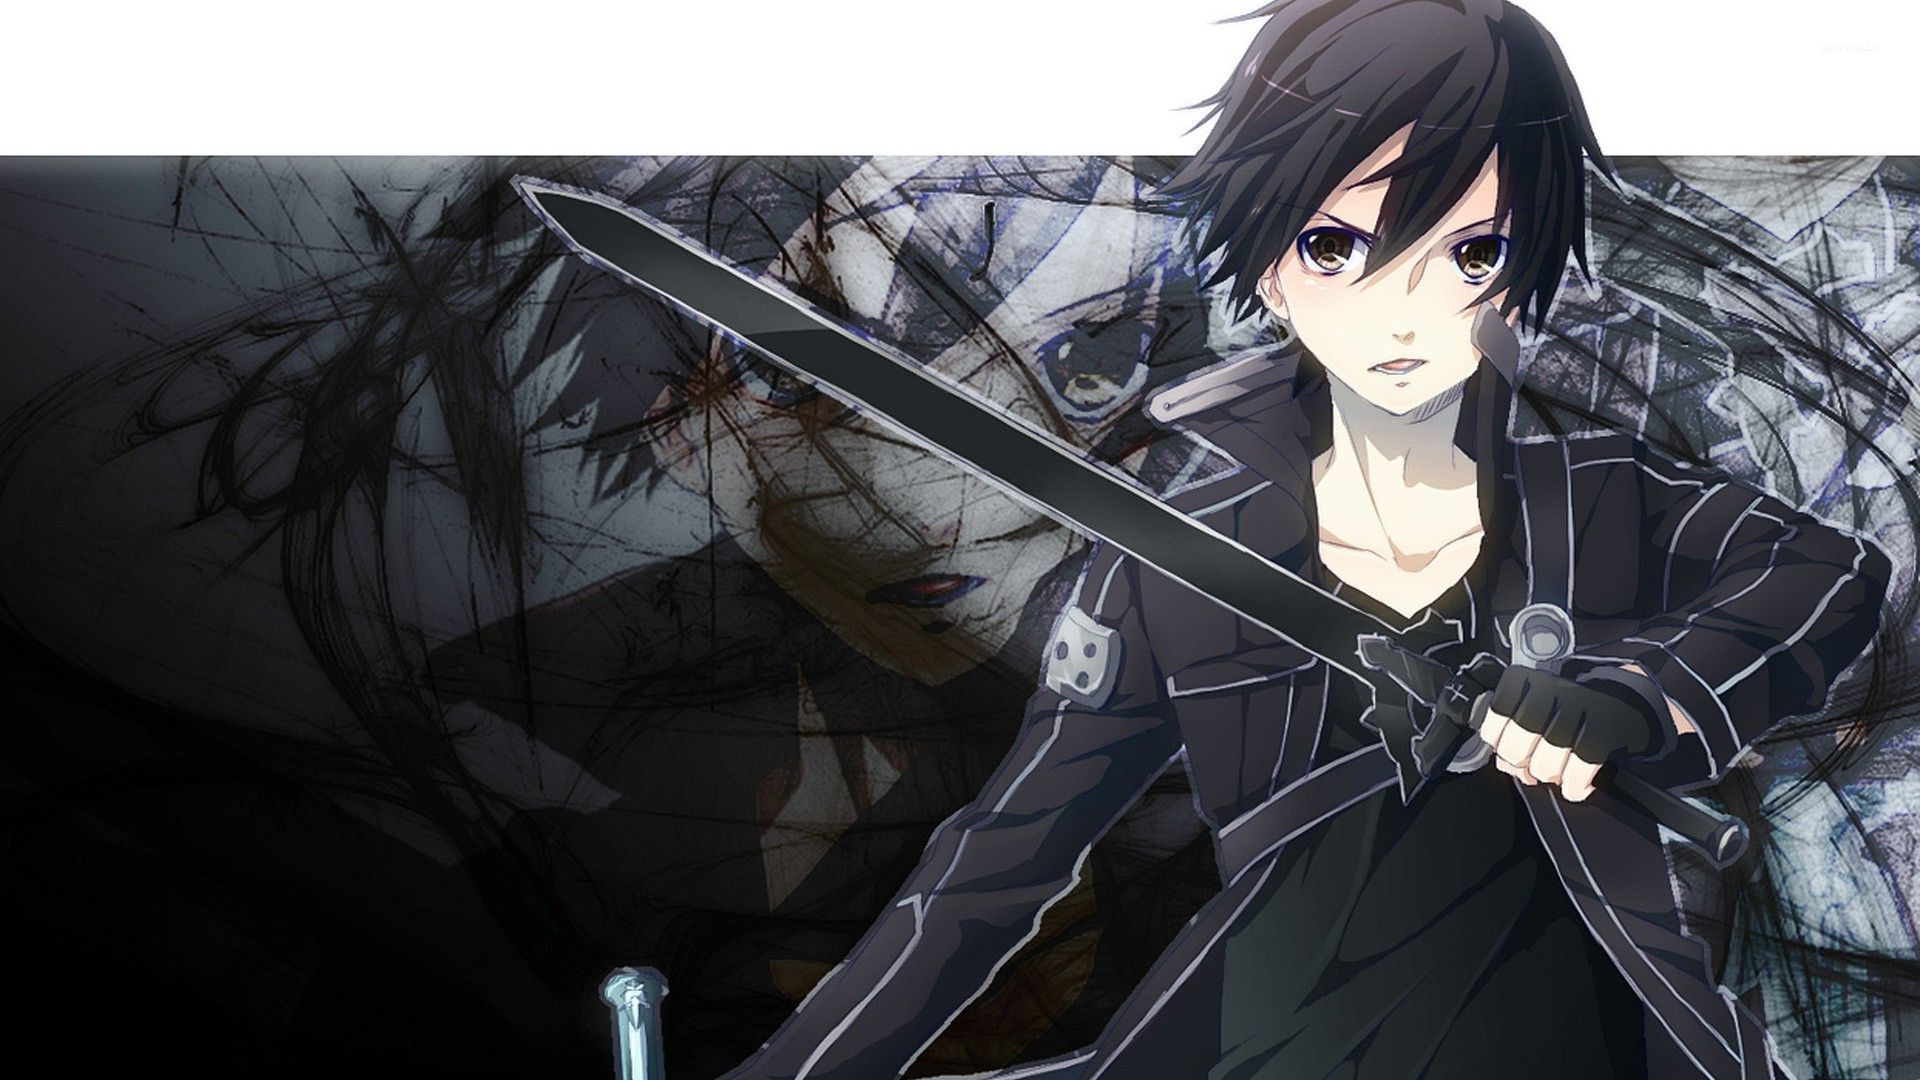 Kirito and Asuna Sword Art Online wallpaper Anime